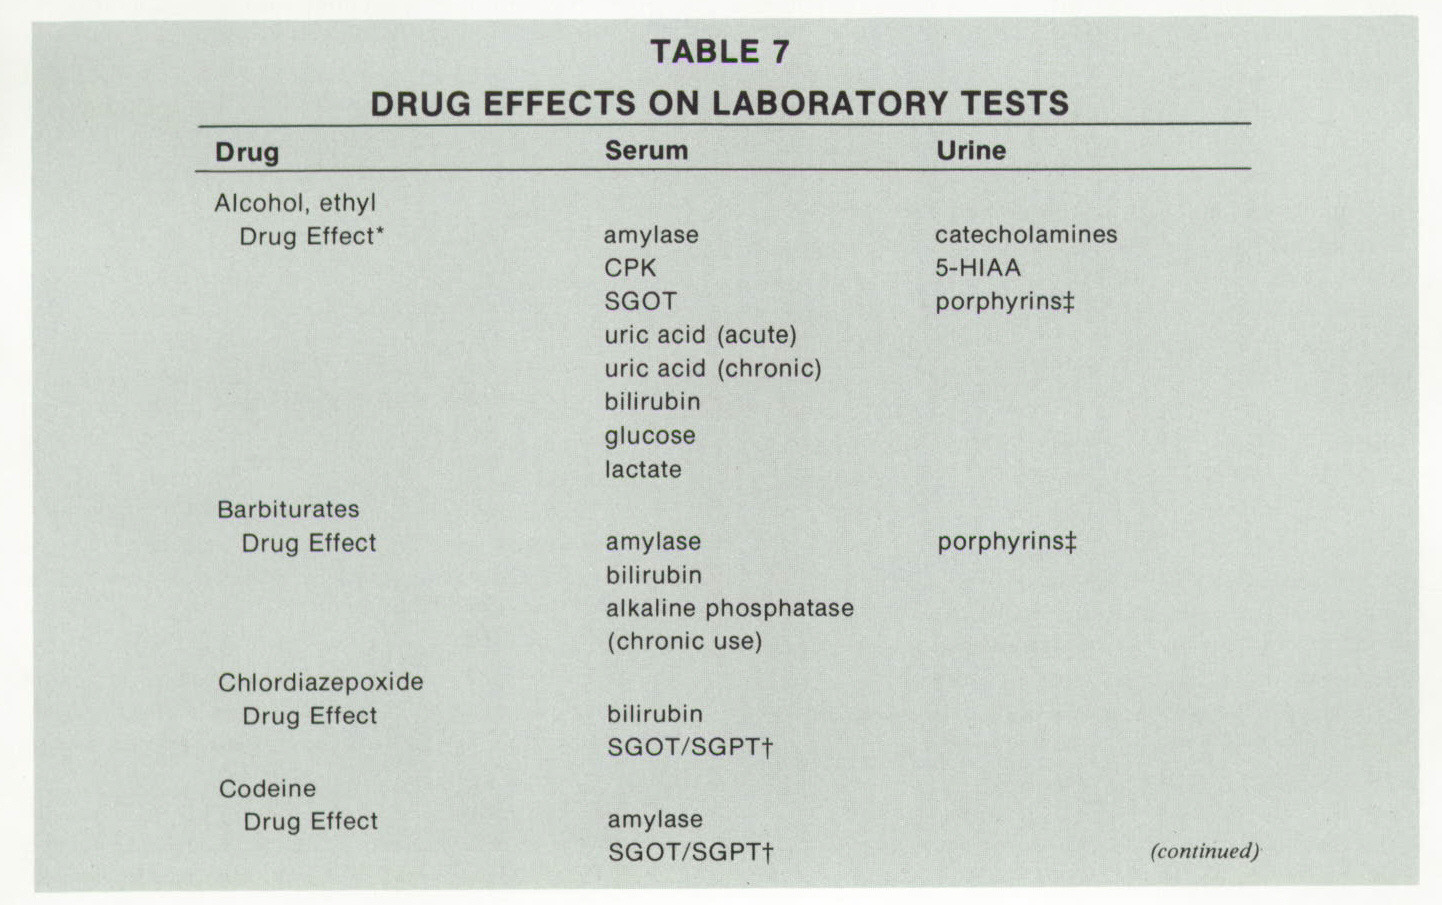 TABLE 7DRUG EFFECTS ON LABORATORY TESTS